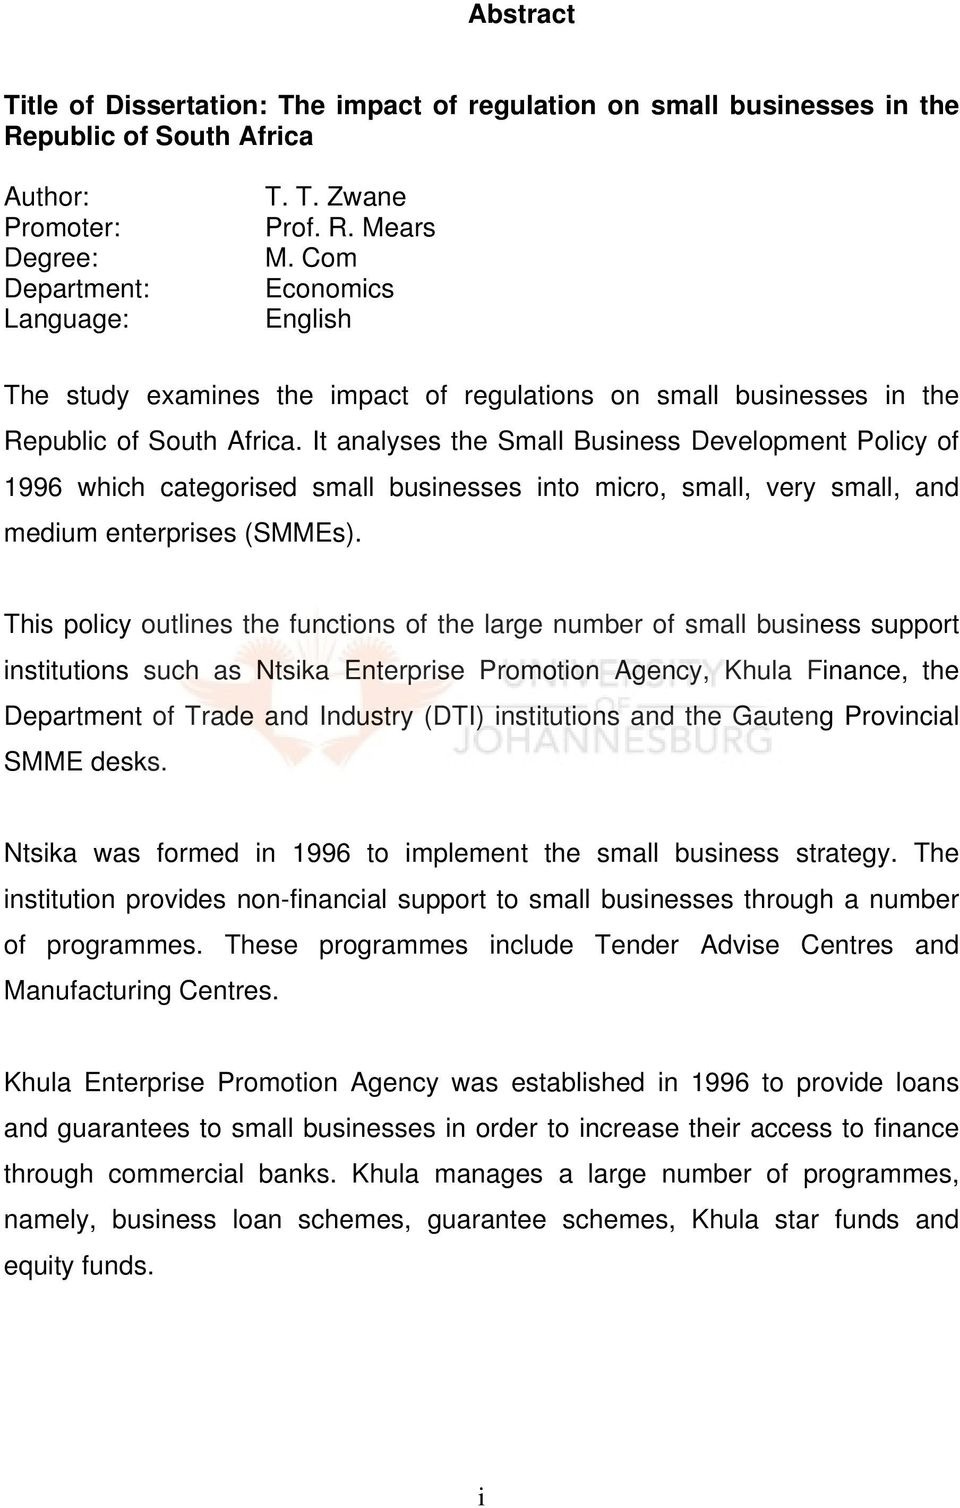 It analyses the Small Business Development Policy of 1996 which categorised small businesses into micro, small, very small, and medium enterprises (SMMEs).